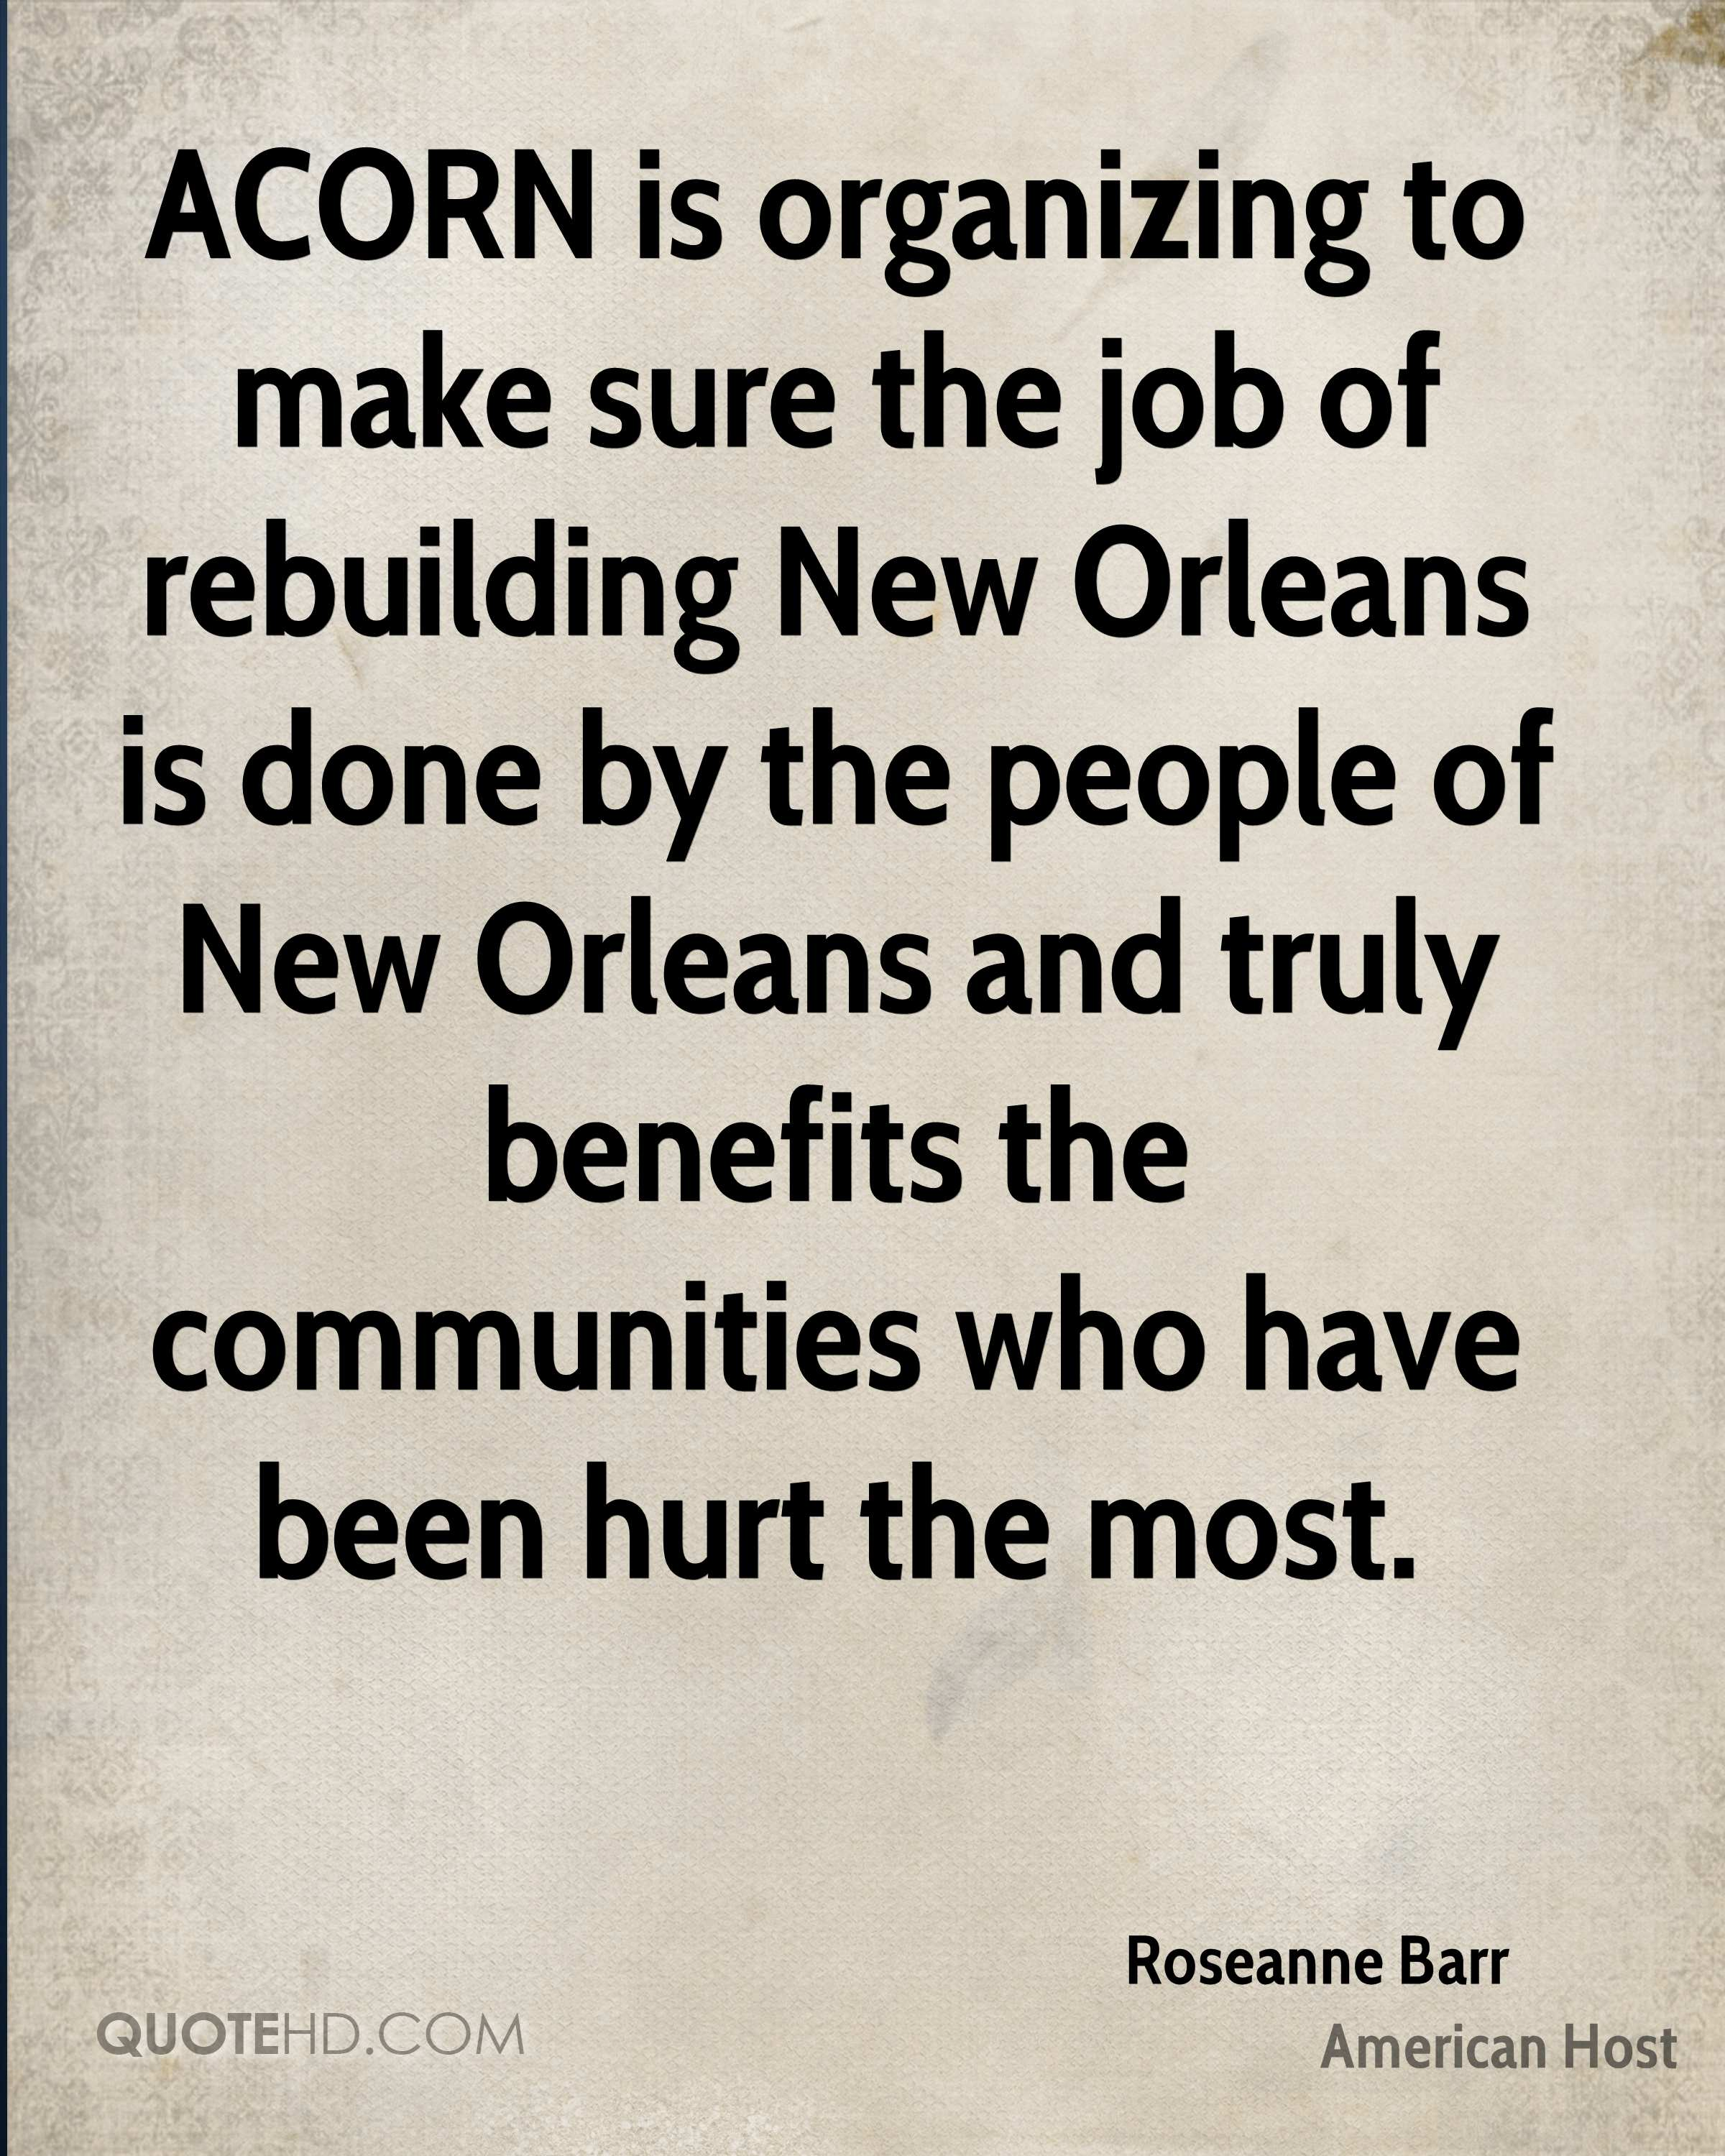 ACORN is organizing to make sure the job of rebuilding New Orleans is done by the people of New Orleans and truly benefits the communities who have been hurt the most.